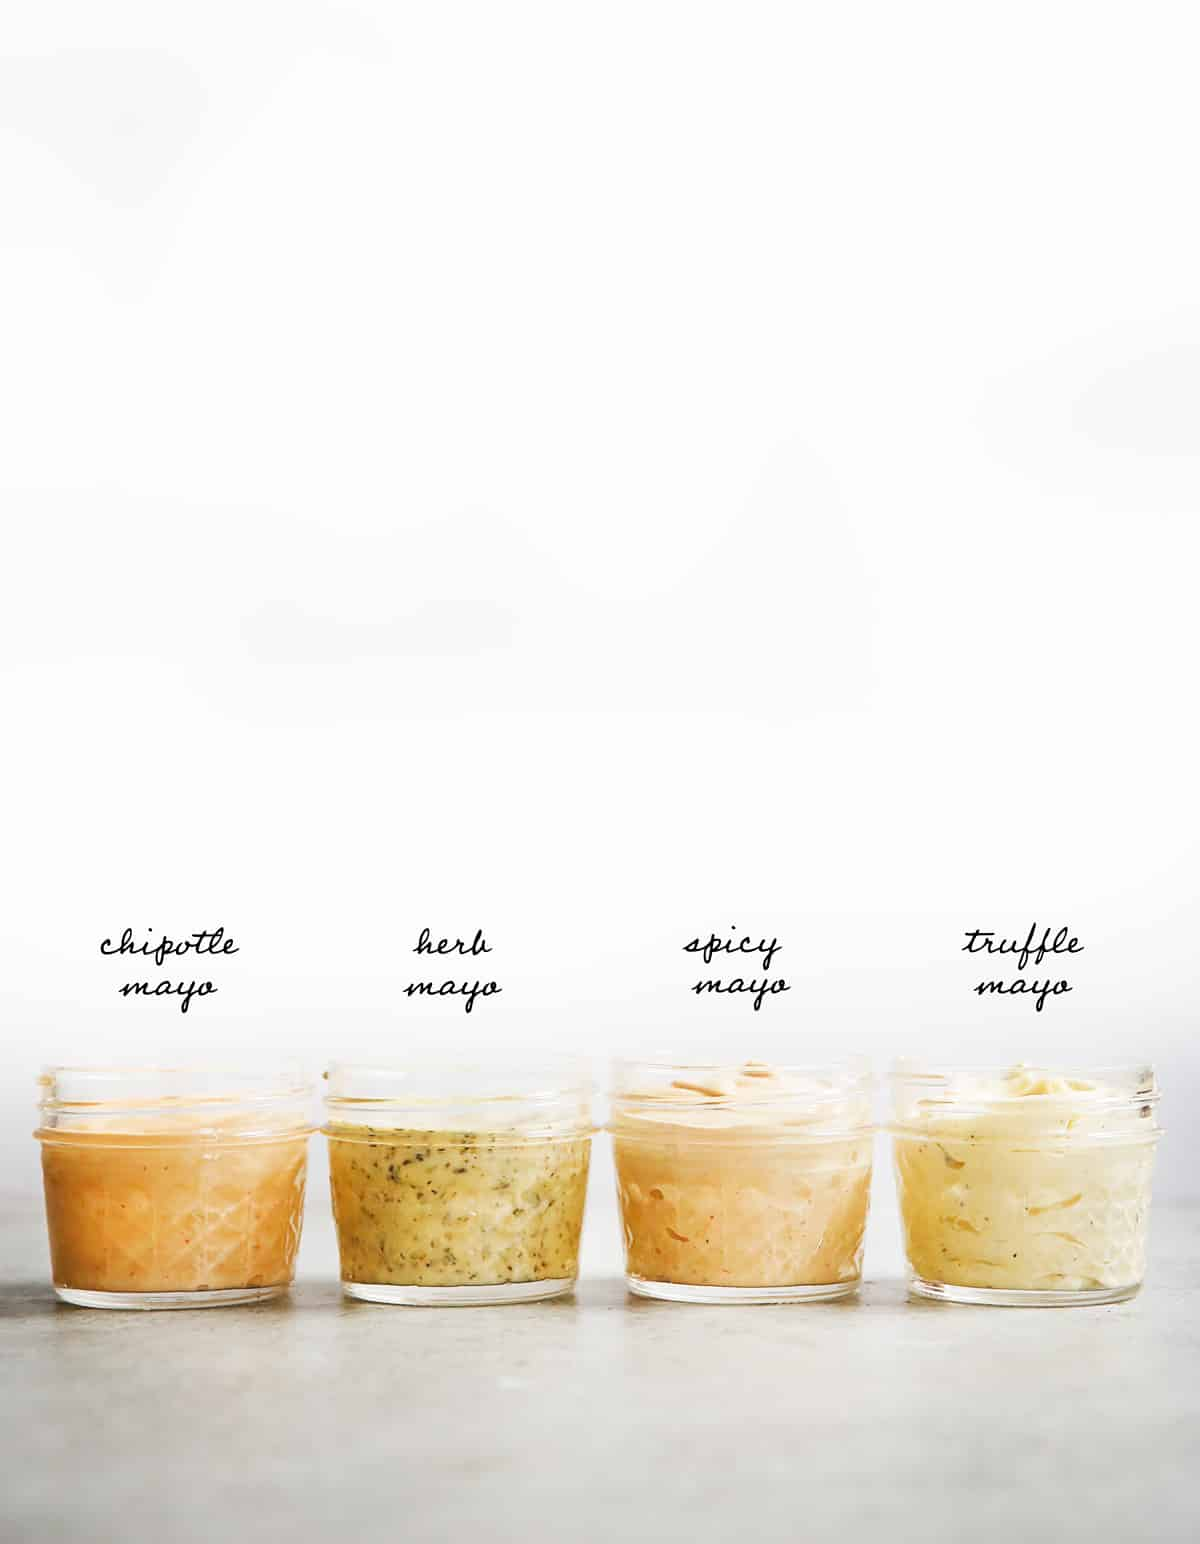 Flavor variations of paleo mayo